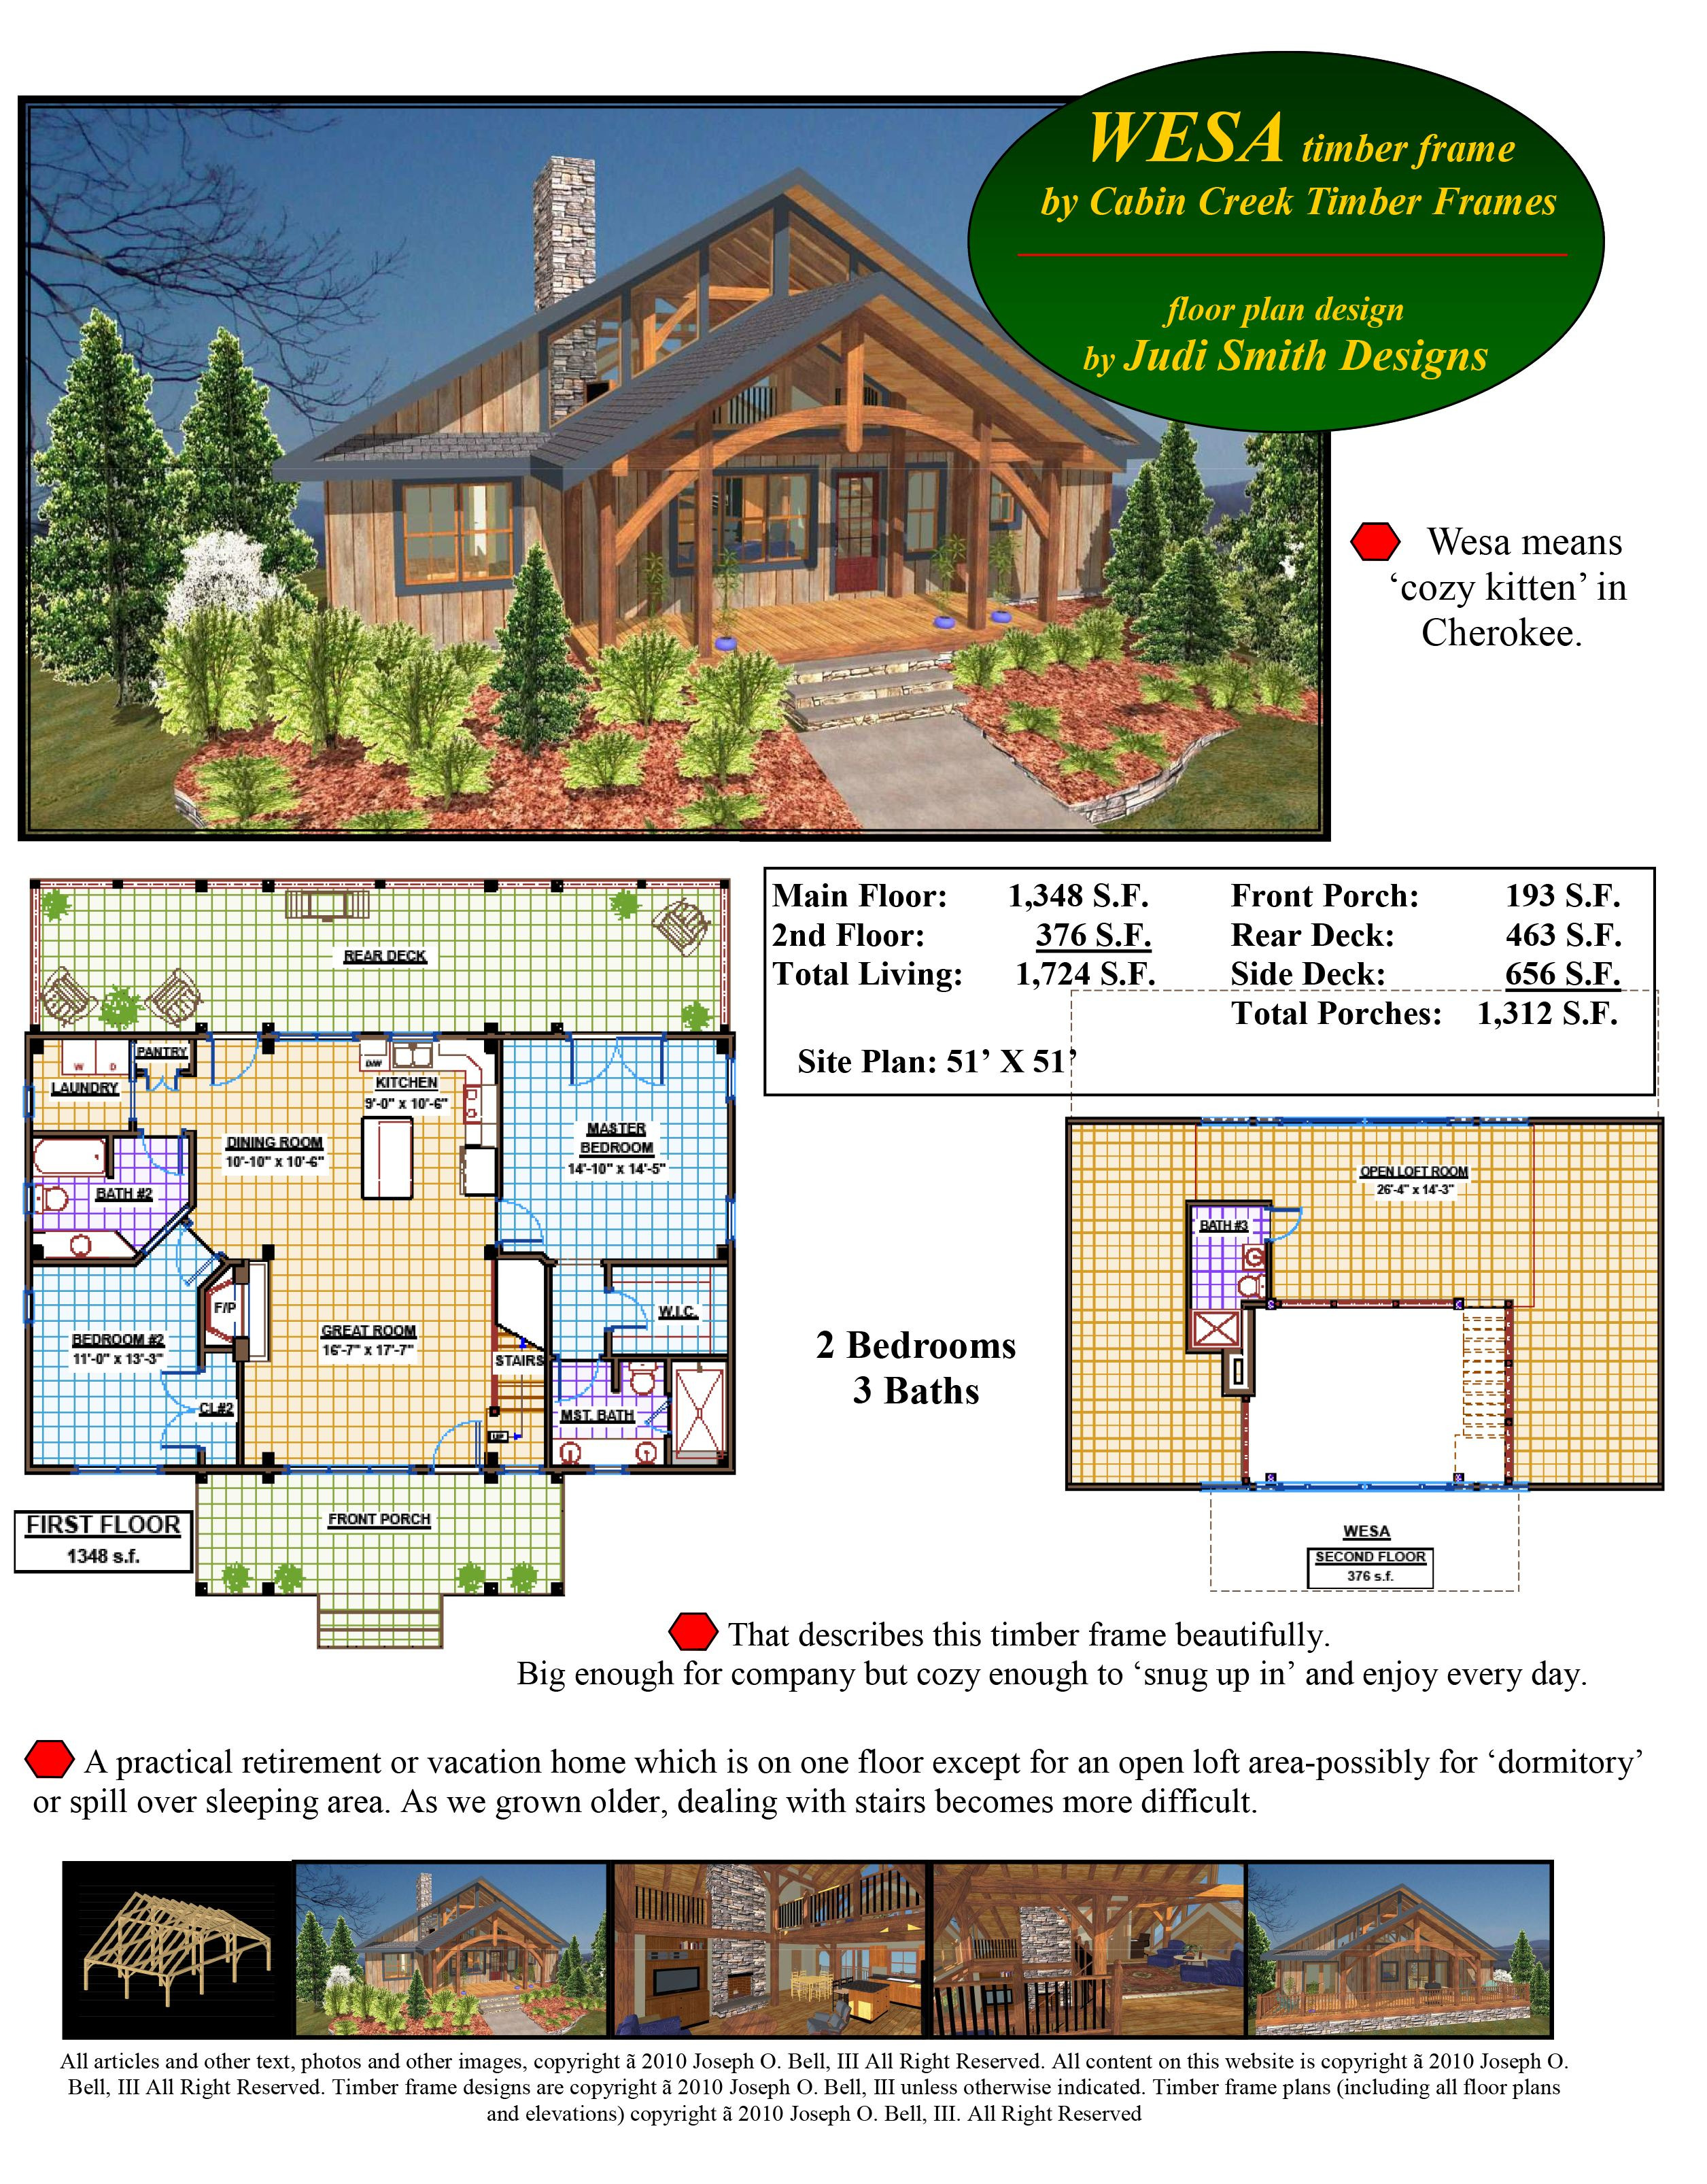 Cabin Creek Timber Frames Wesa for the brochure book 1